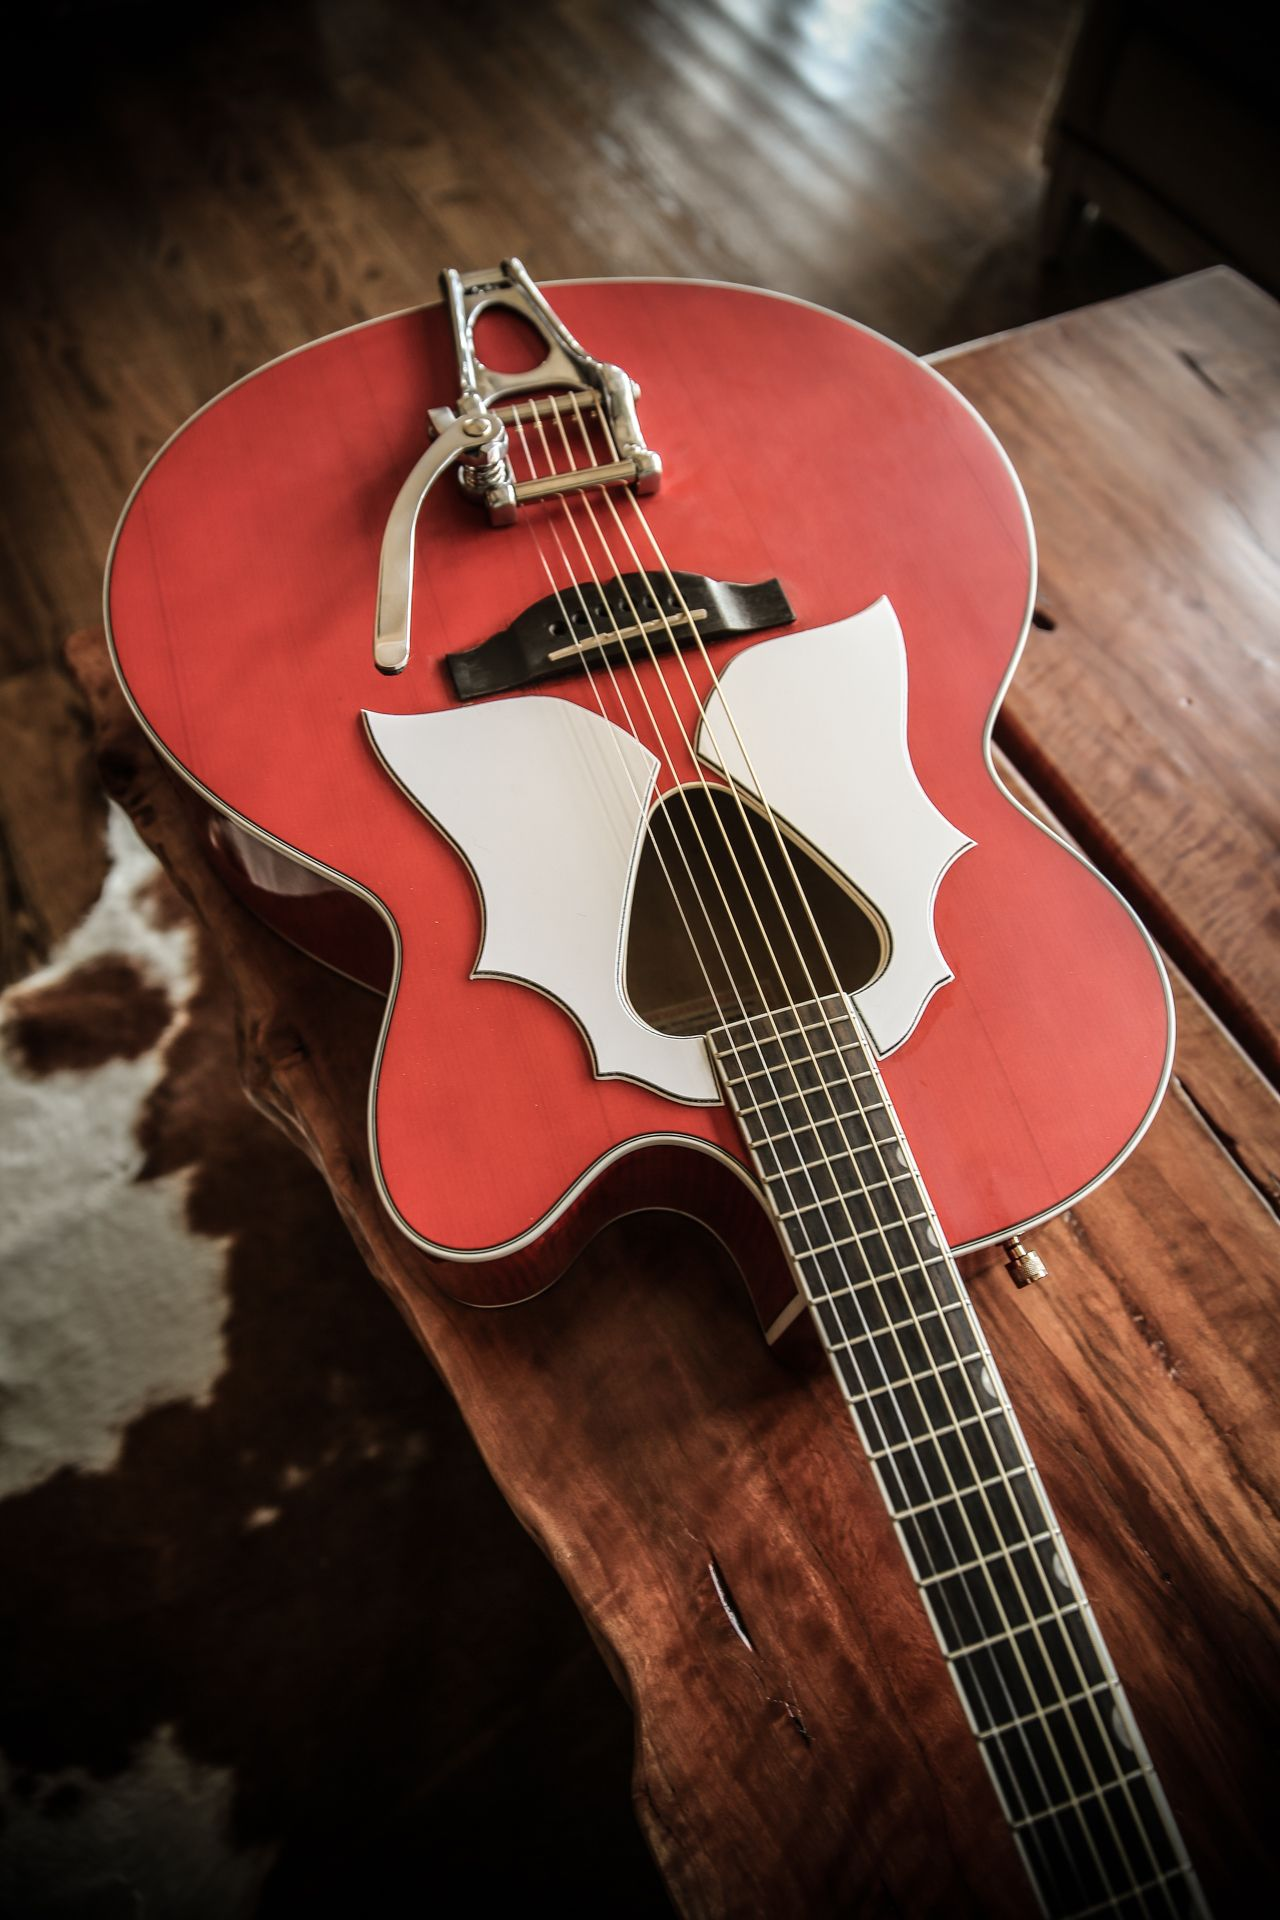 Gretsch Mod I Did On My Jumbo Acoustic This Is A Really Fantastic Sounding Guitar With These Changes